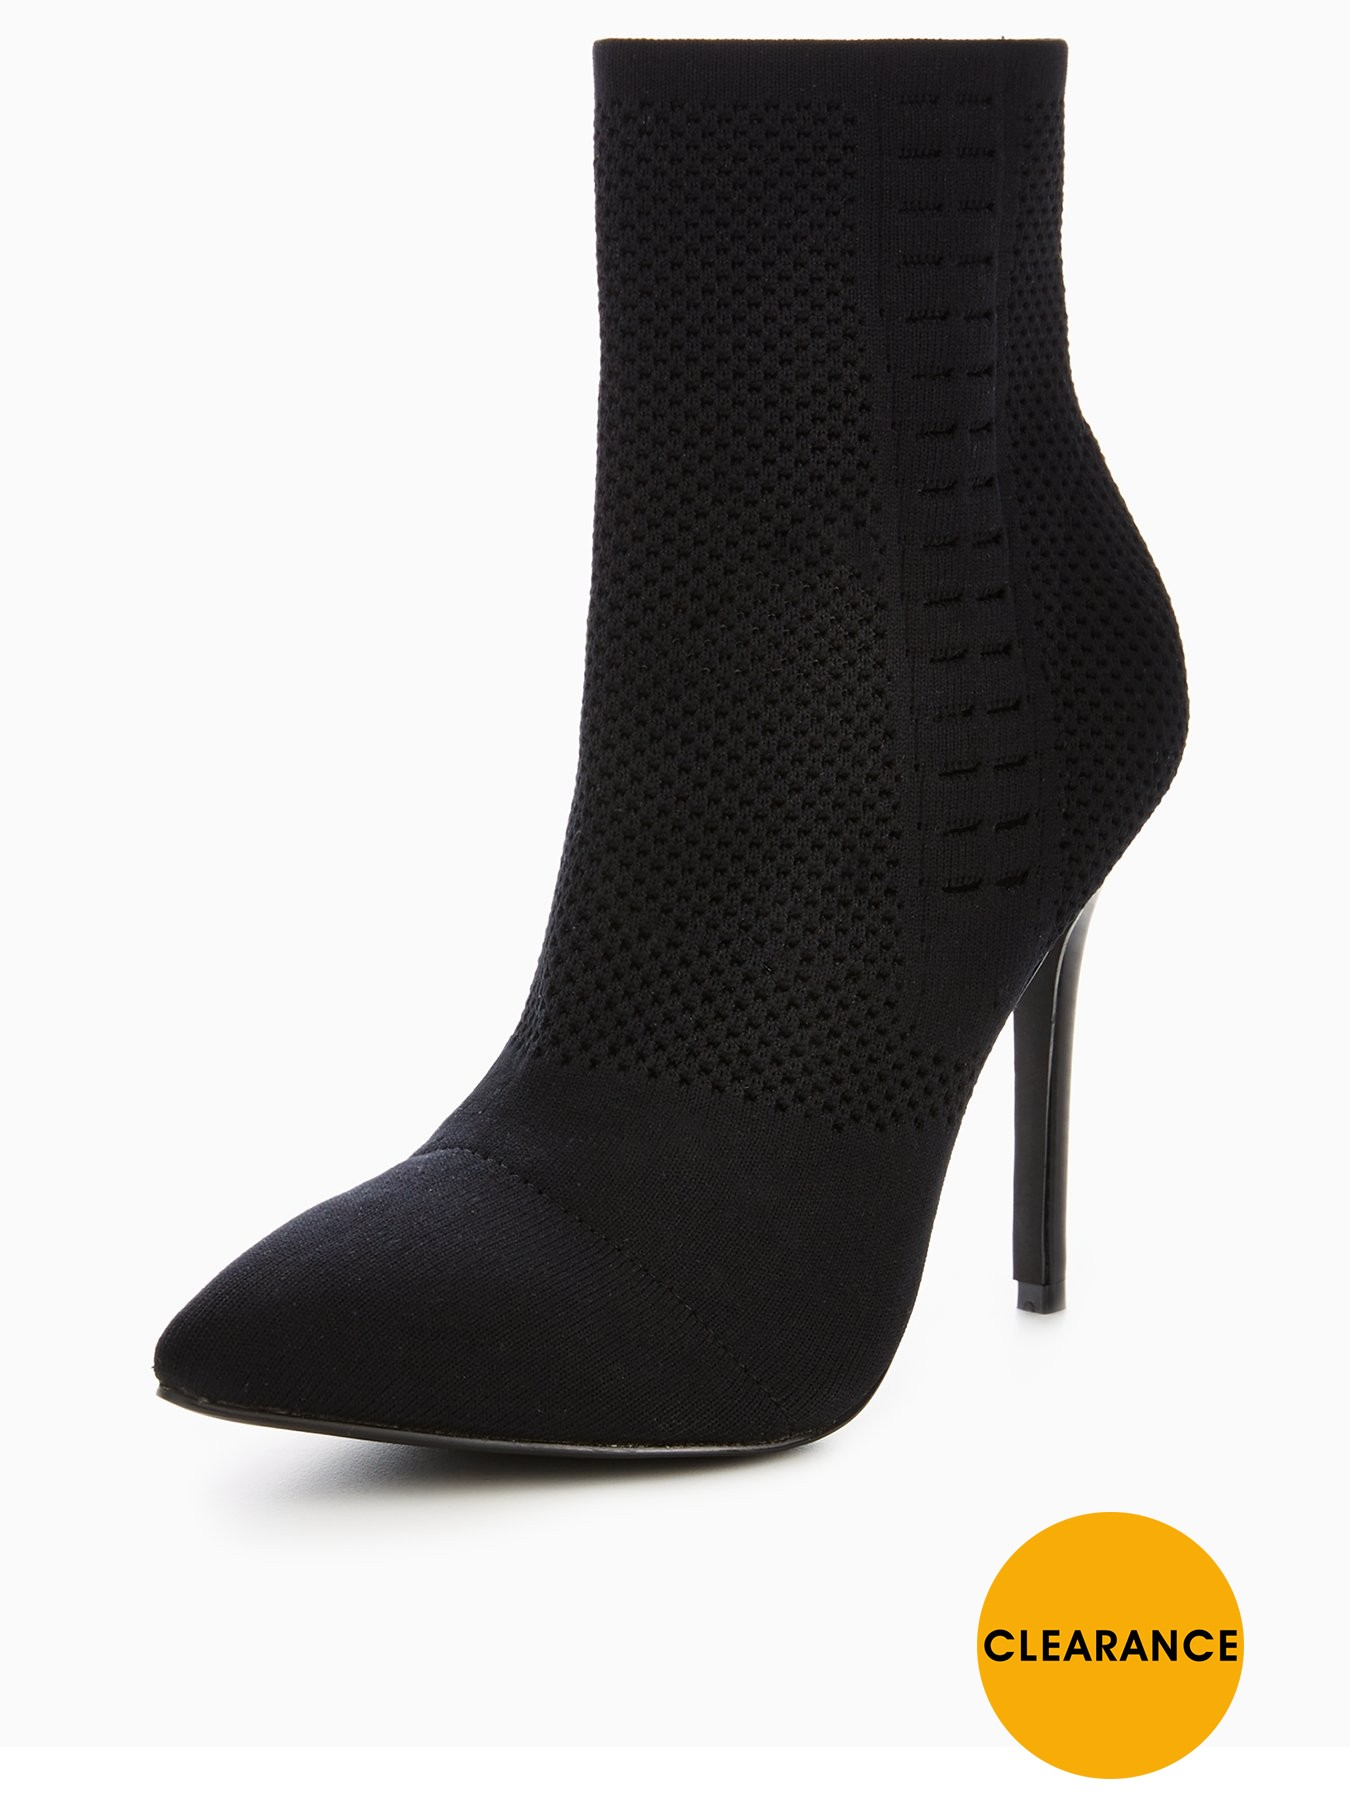 V by Very Kitty Knitted Pointed Ankle Boot Black 1600178998 Women's Shoes V by Very Boots